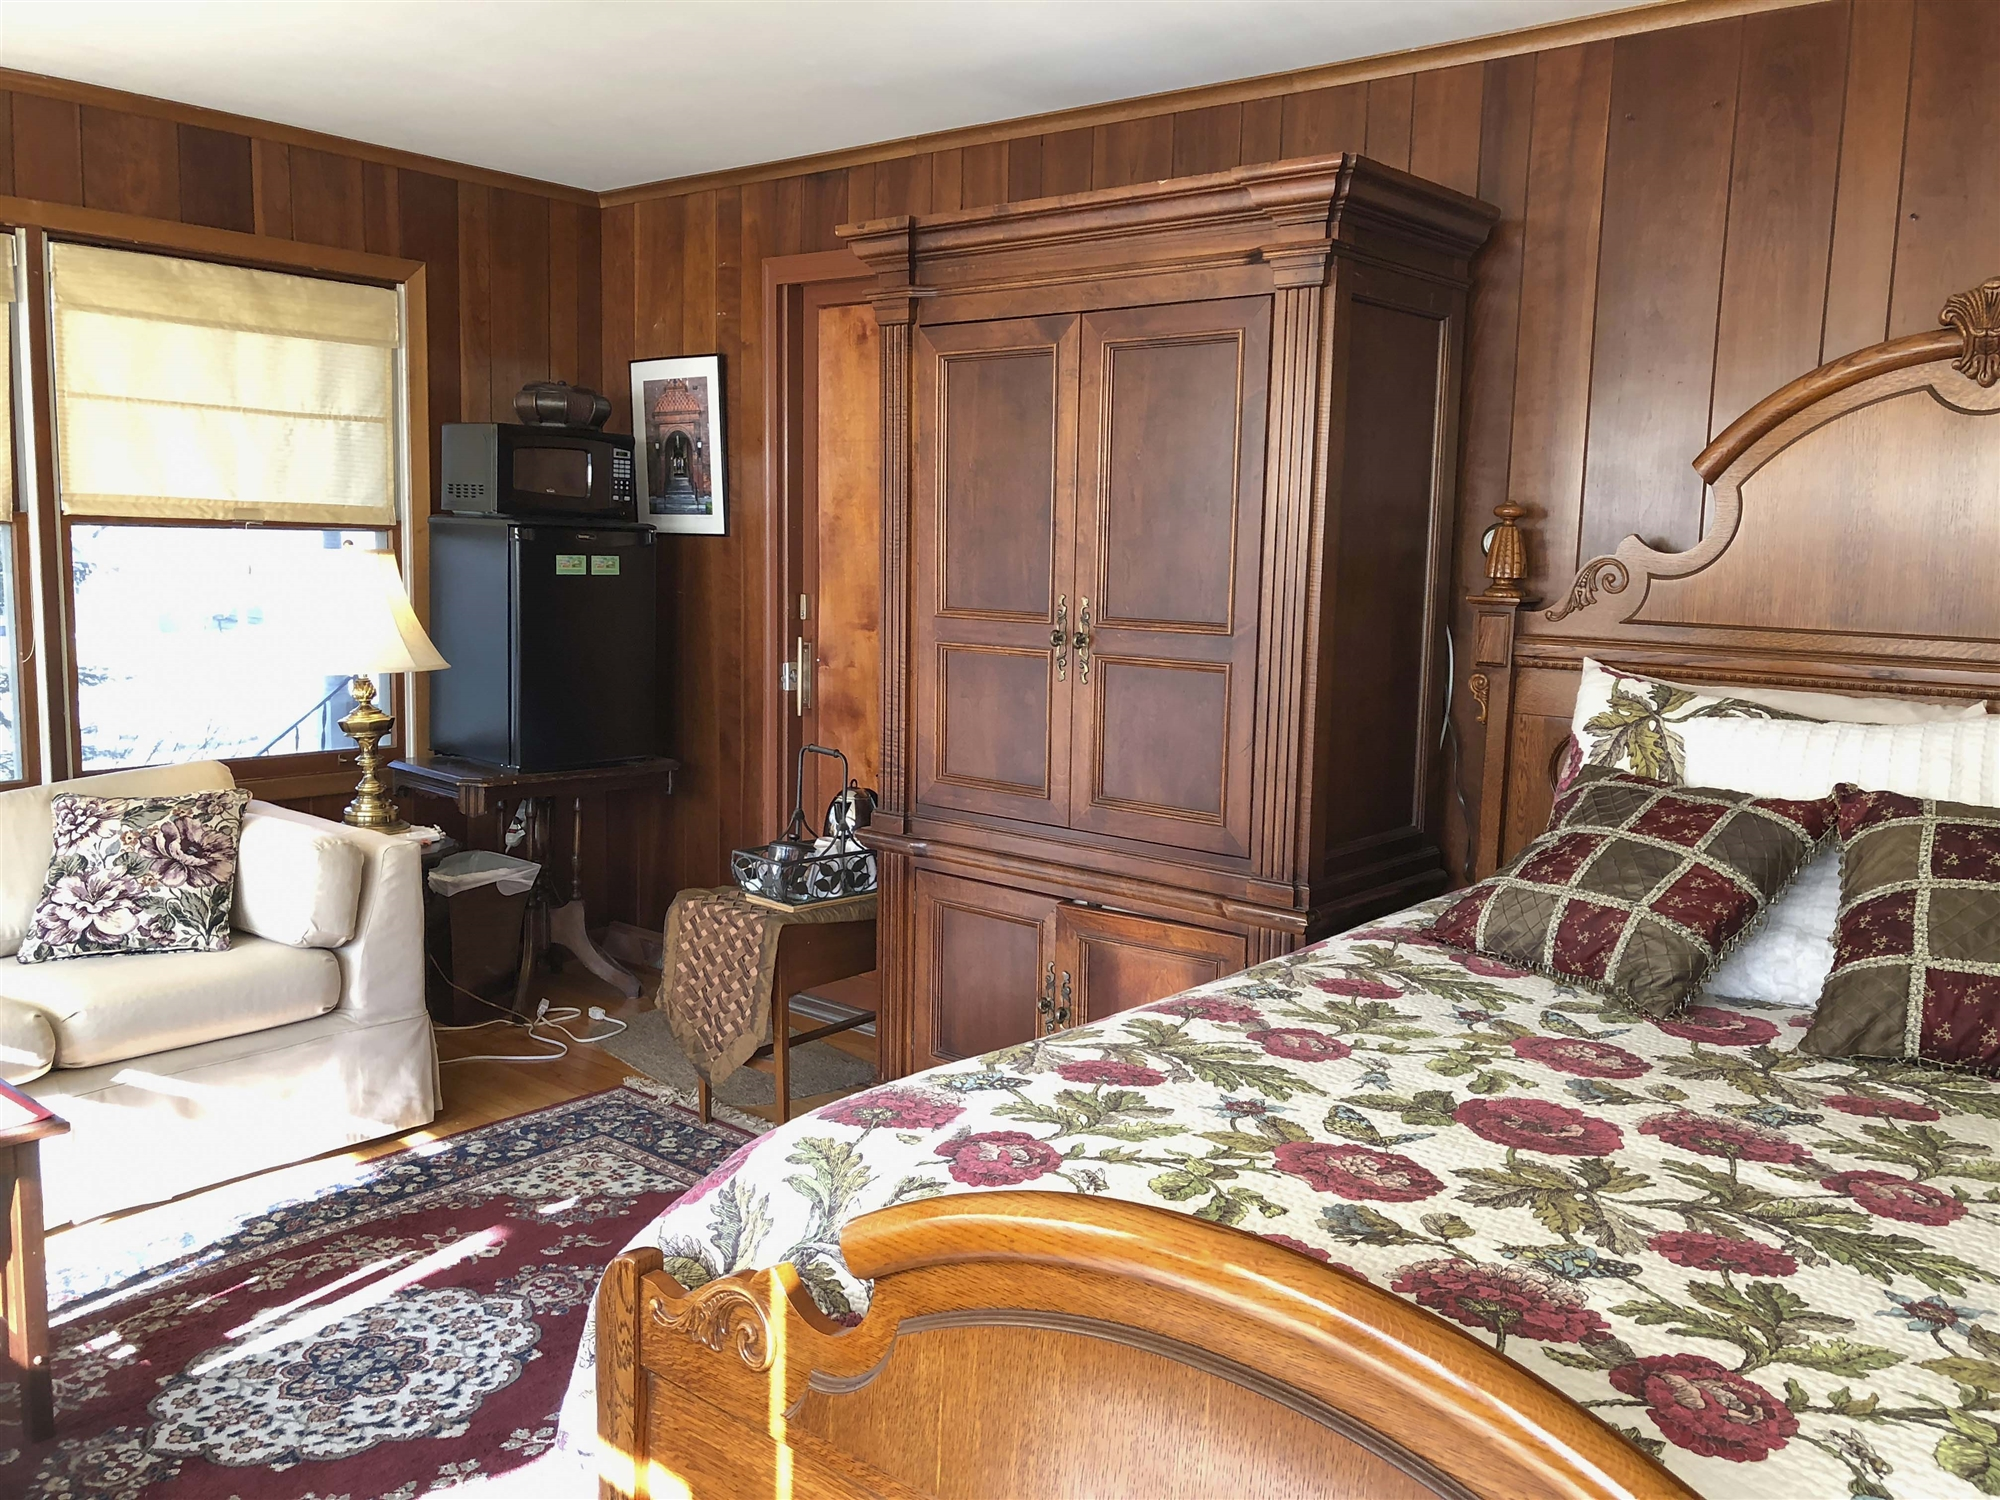 Image for 432 MAIN - PANELED BEDROOM